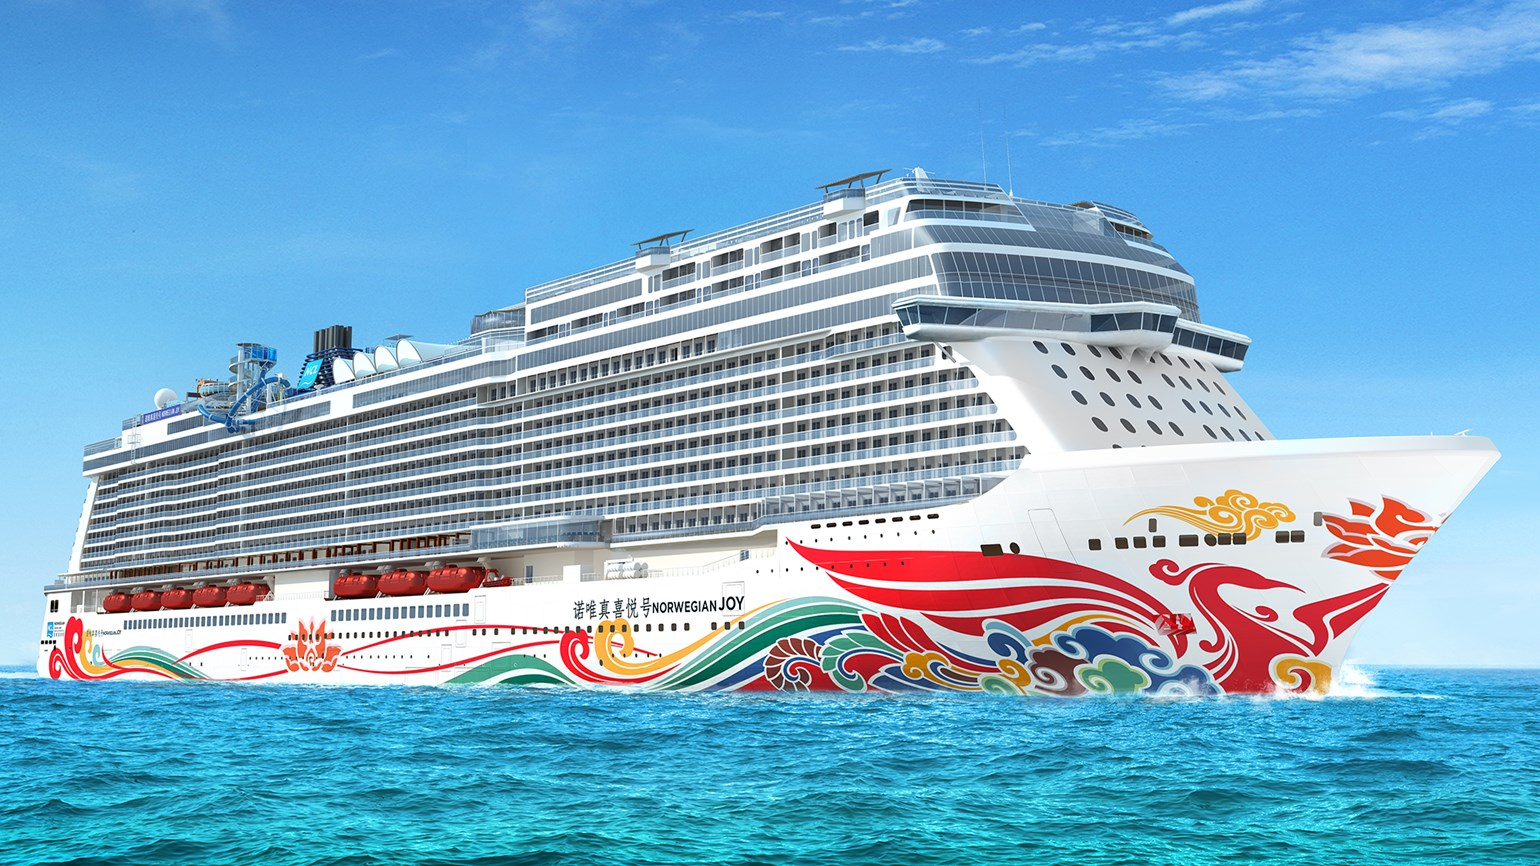 Norwegians Fourth Breakaway Plus Ship Bound For China Travel Weekly - Average price of a cruise ship